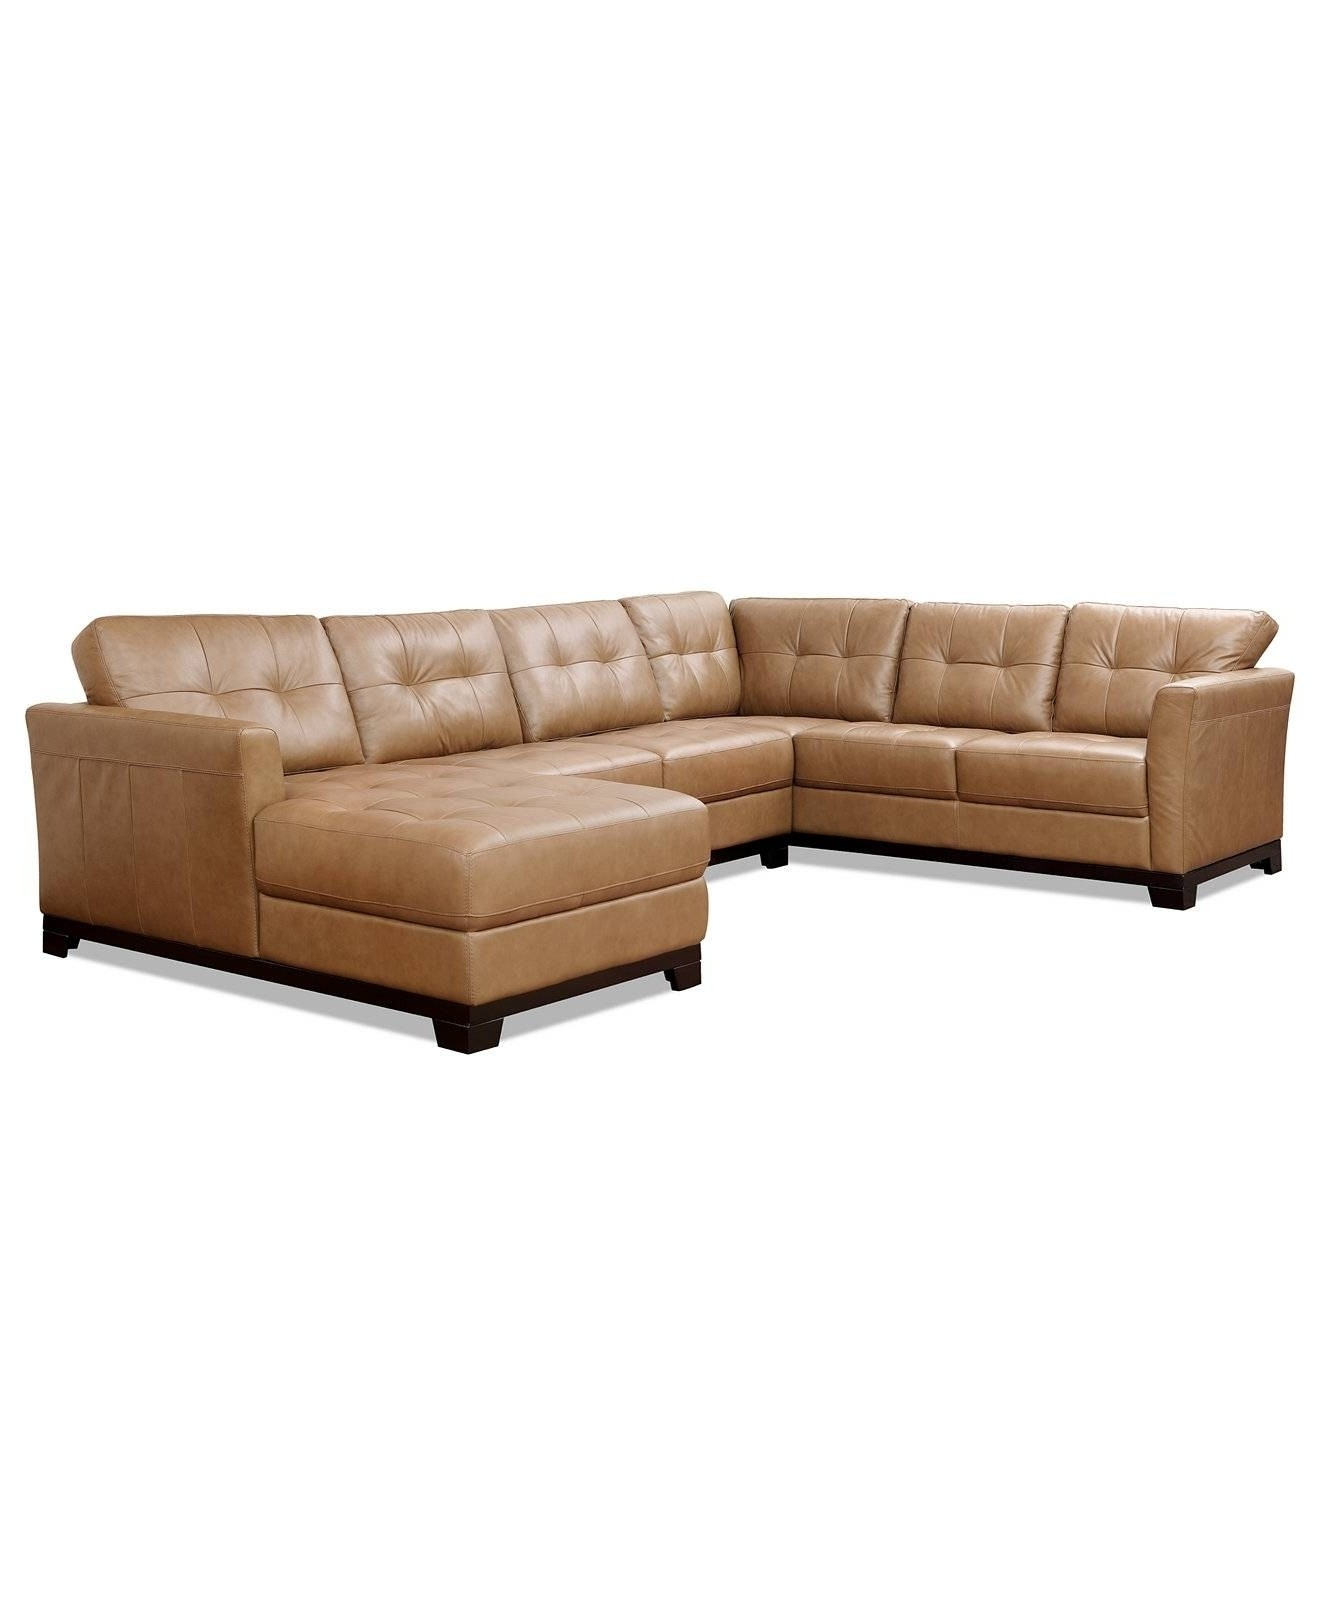 Macys Leather Sofas On Sale